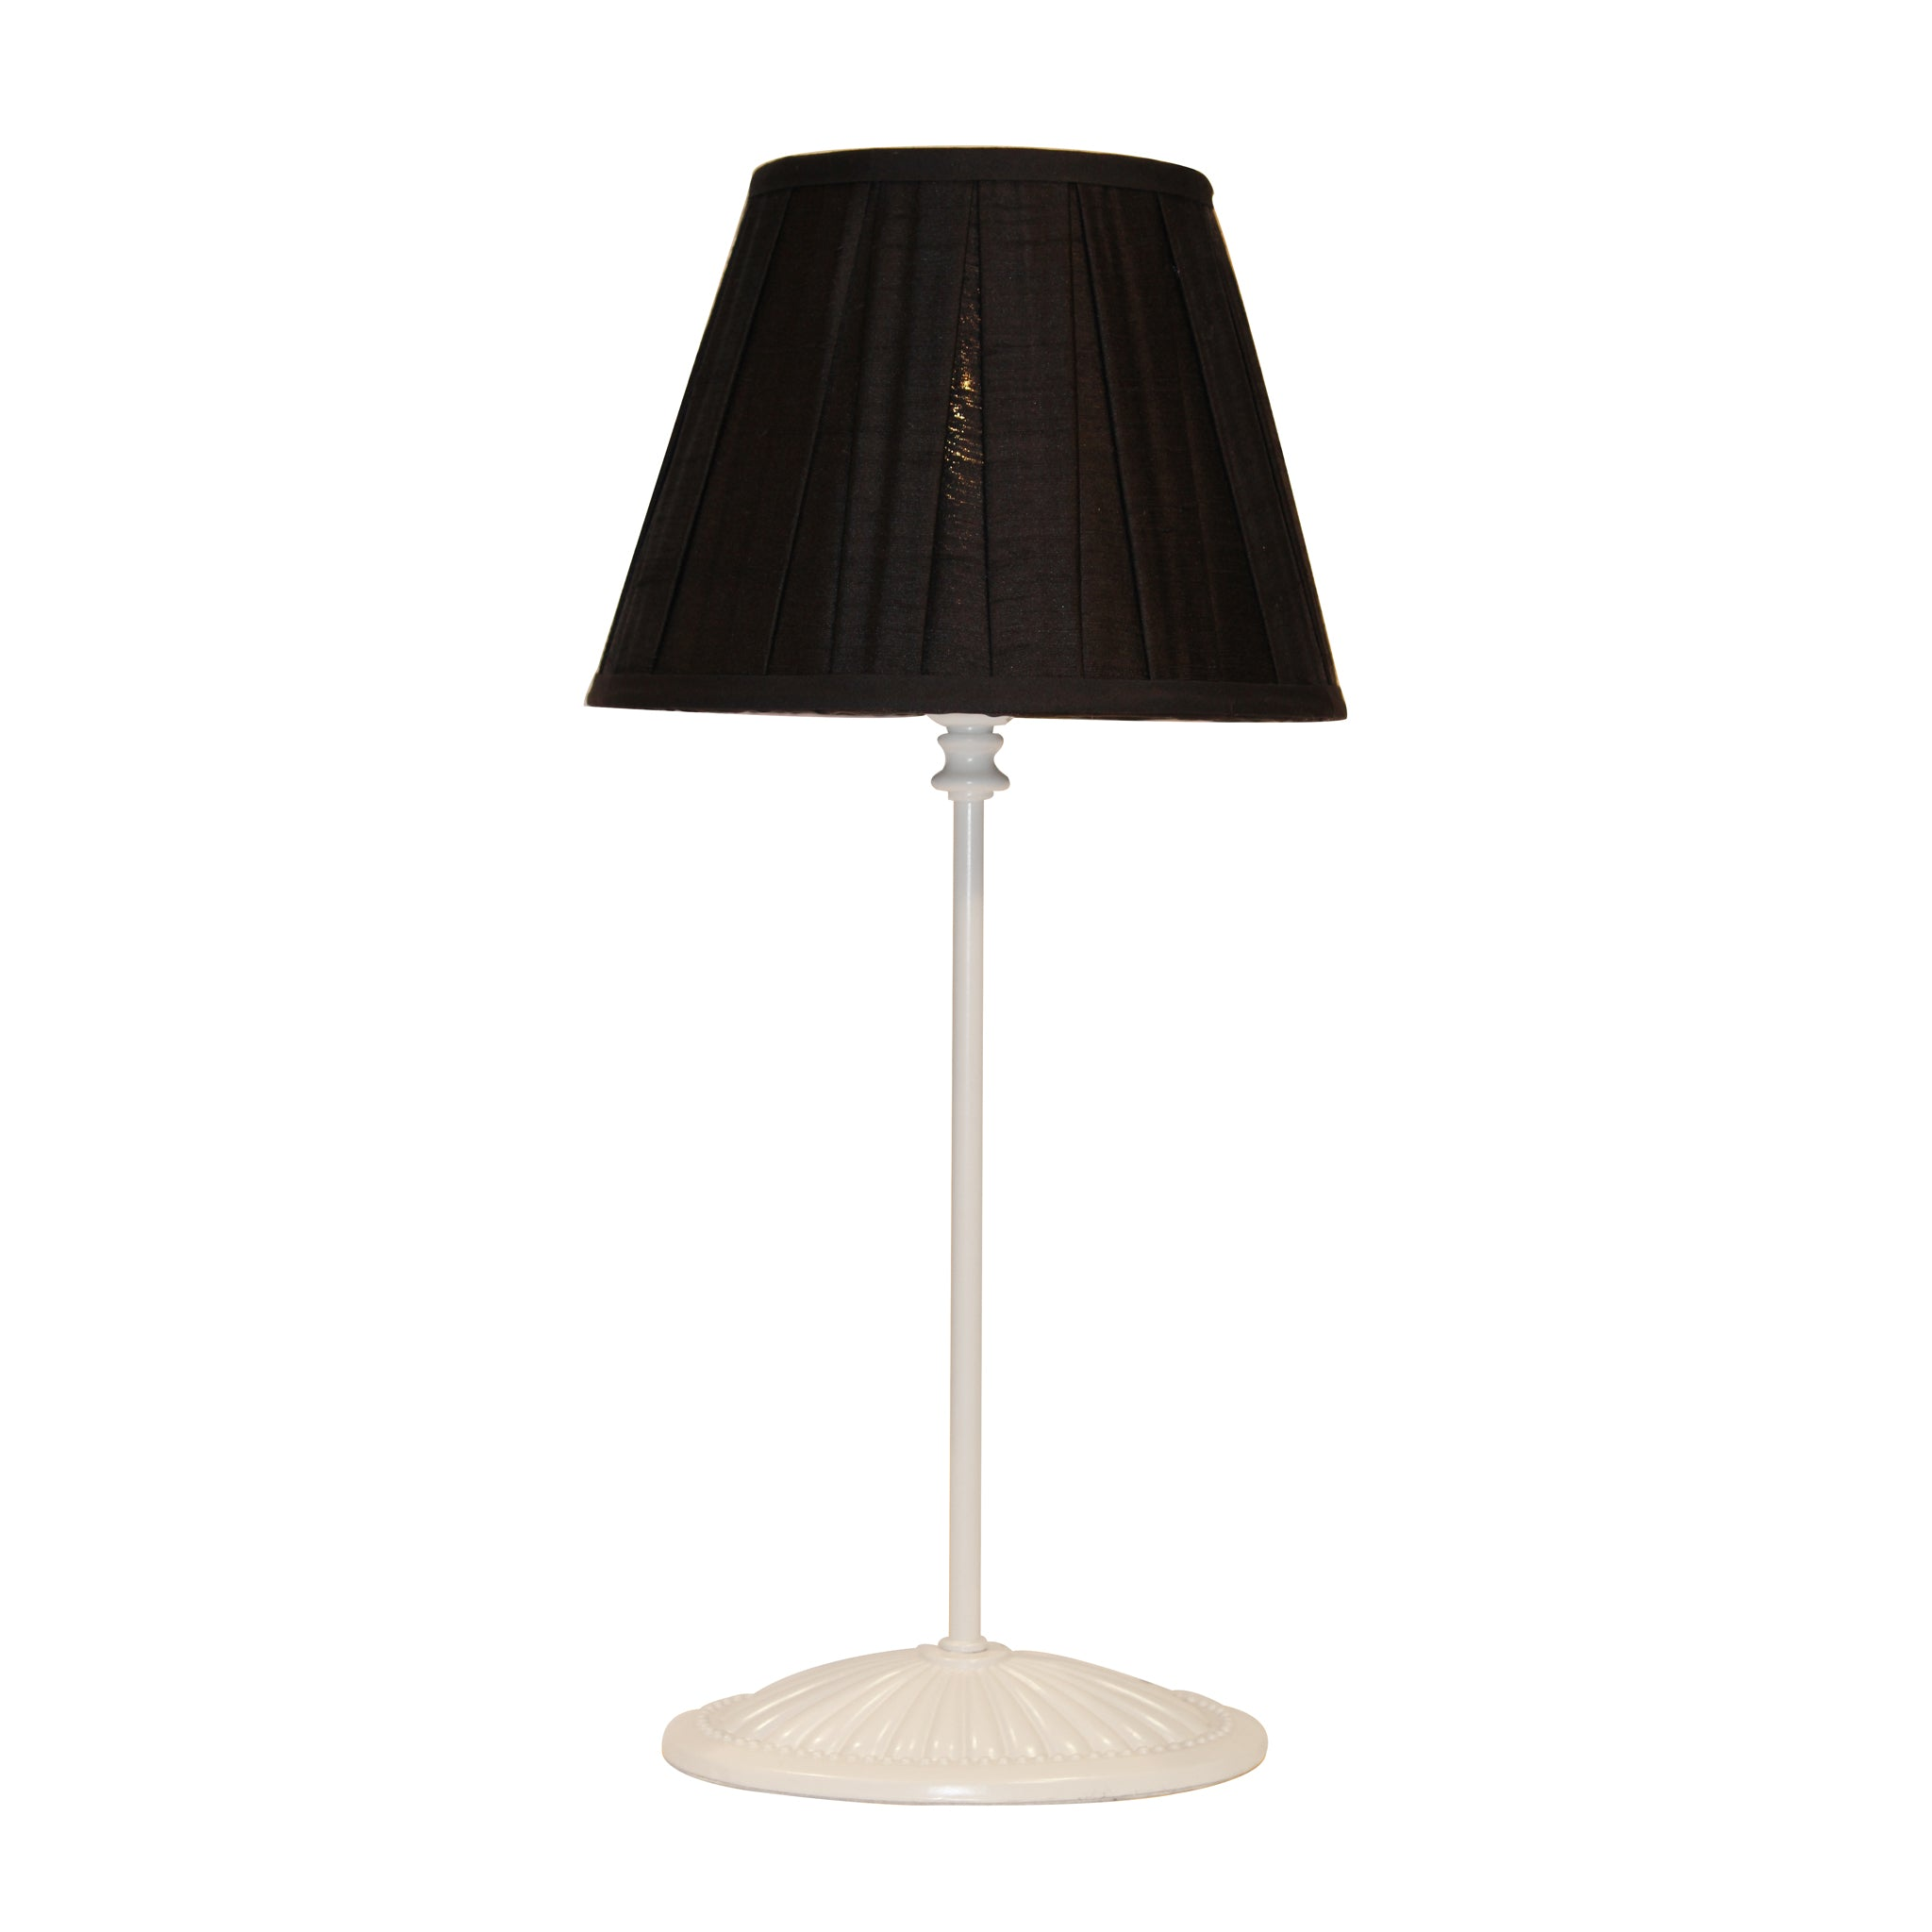 Black silk pleated lampshade